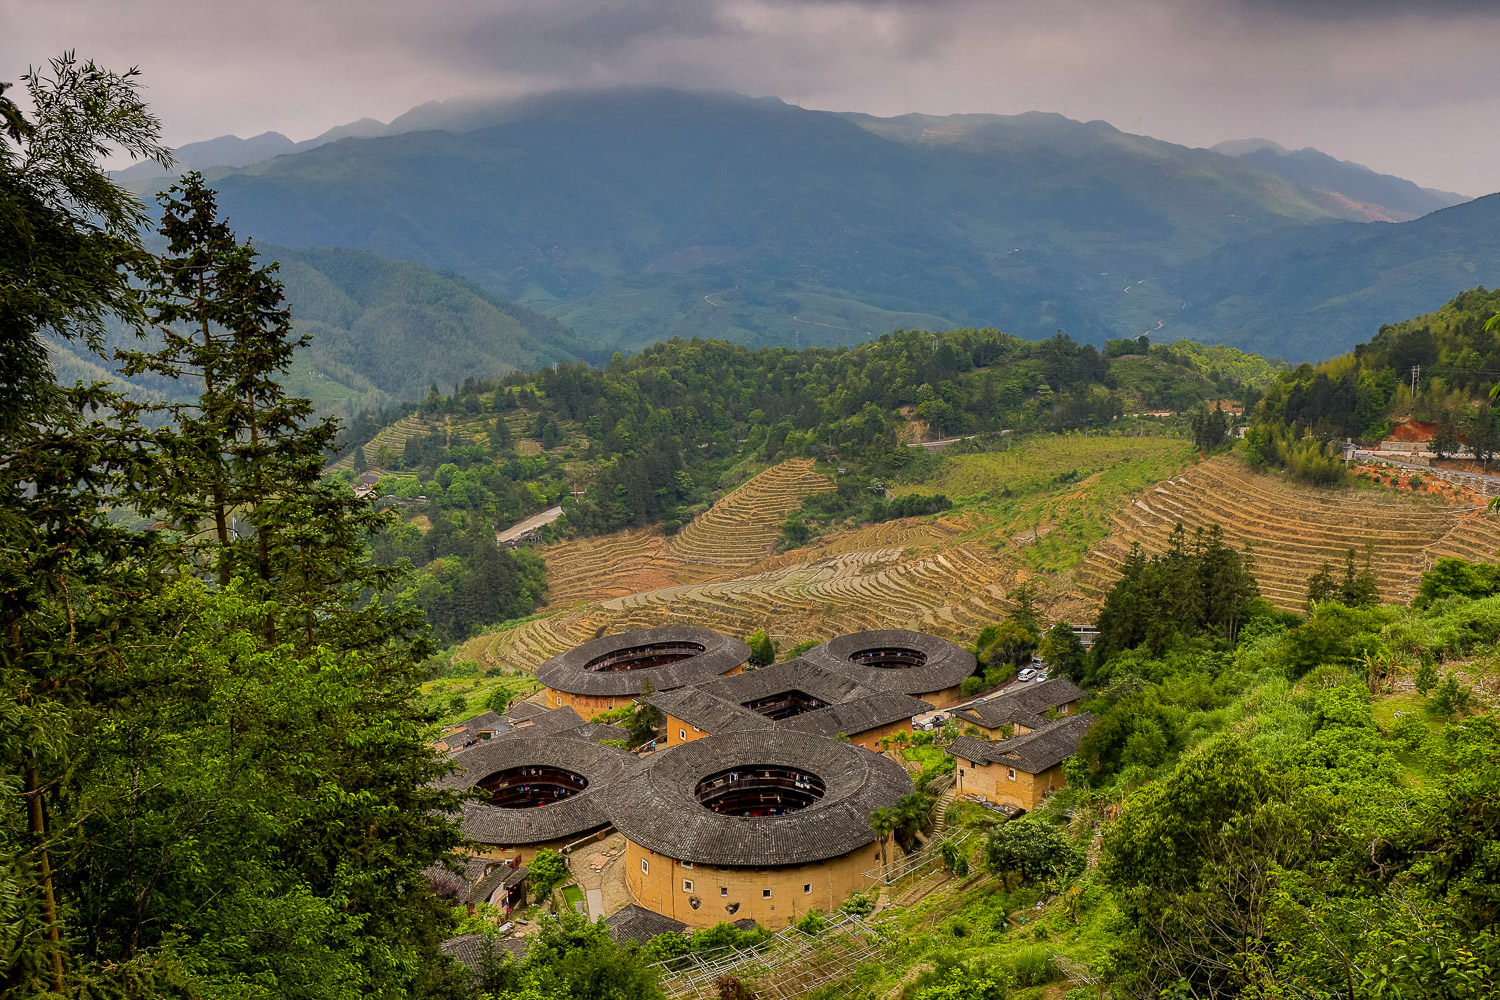 Picture of Tianluokeng tulou cluster.